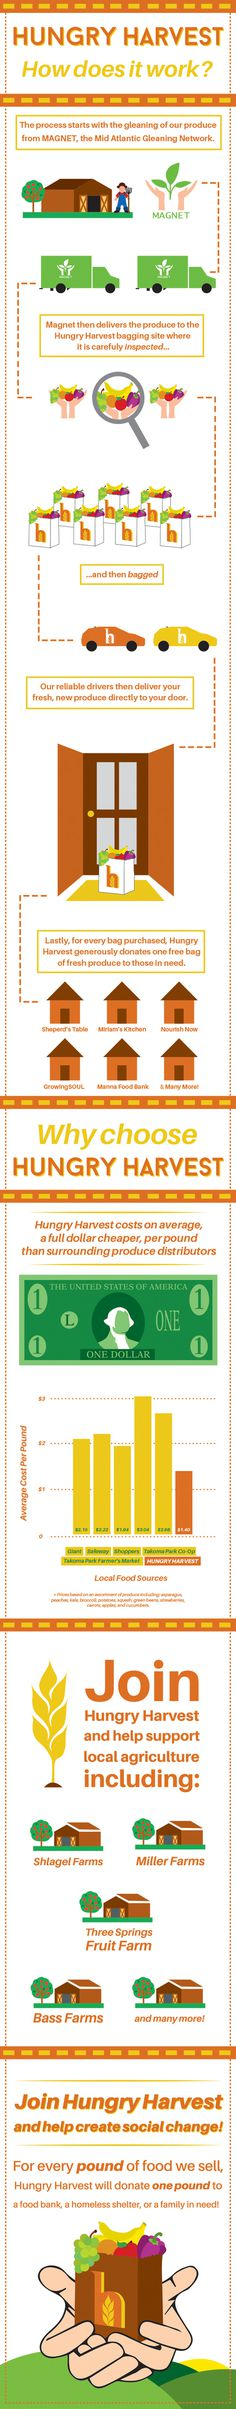 Hungry Harvest Infographic by Matt Hodin